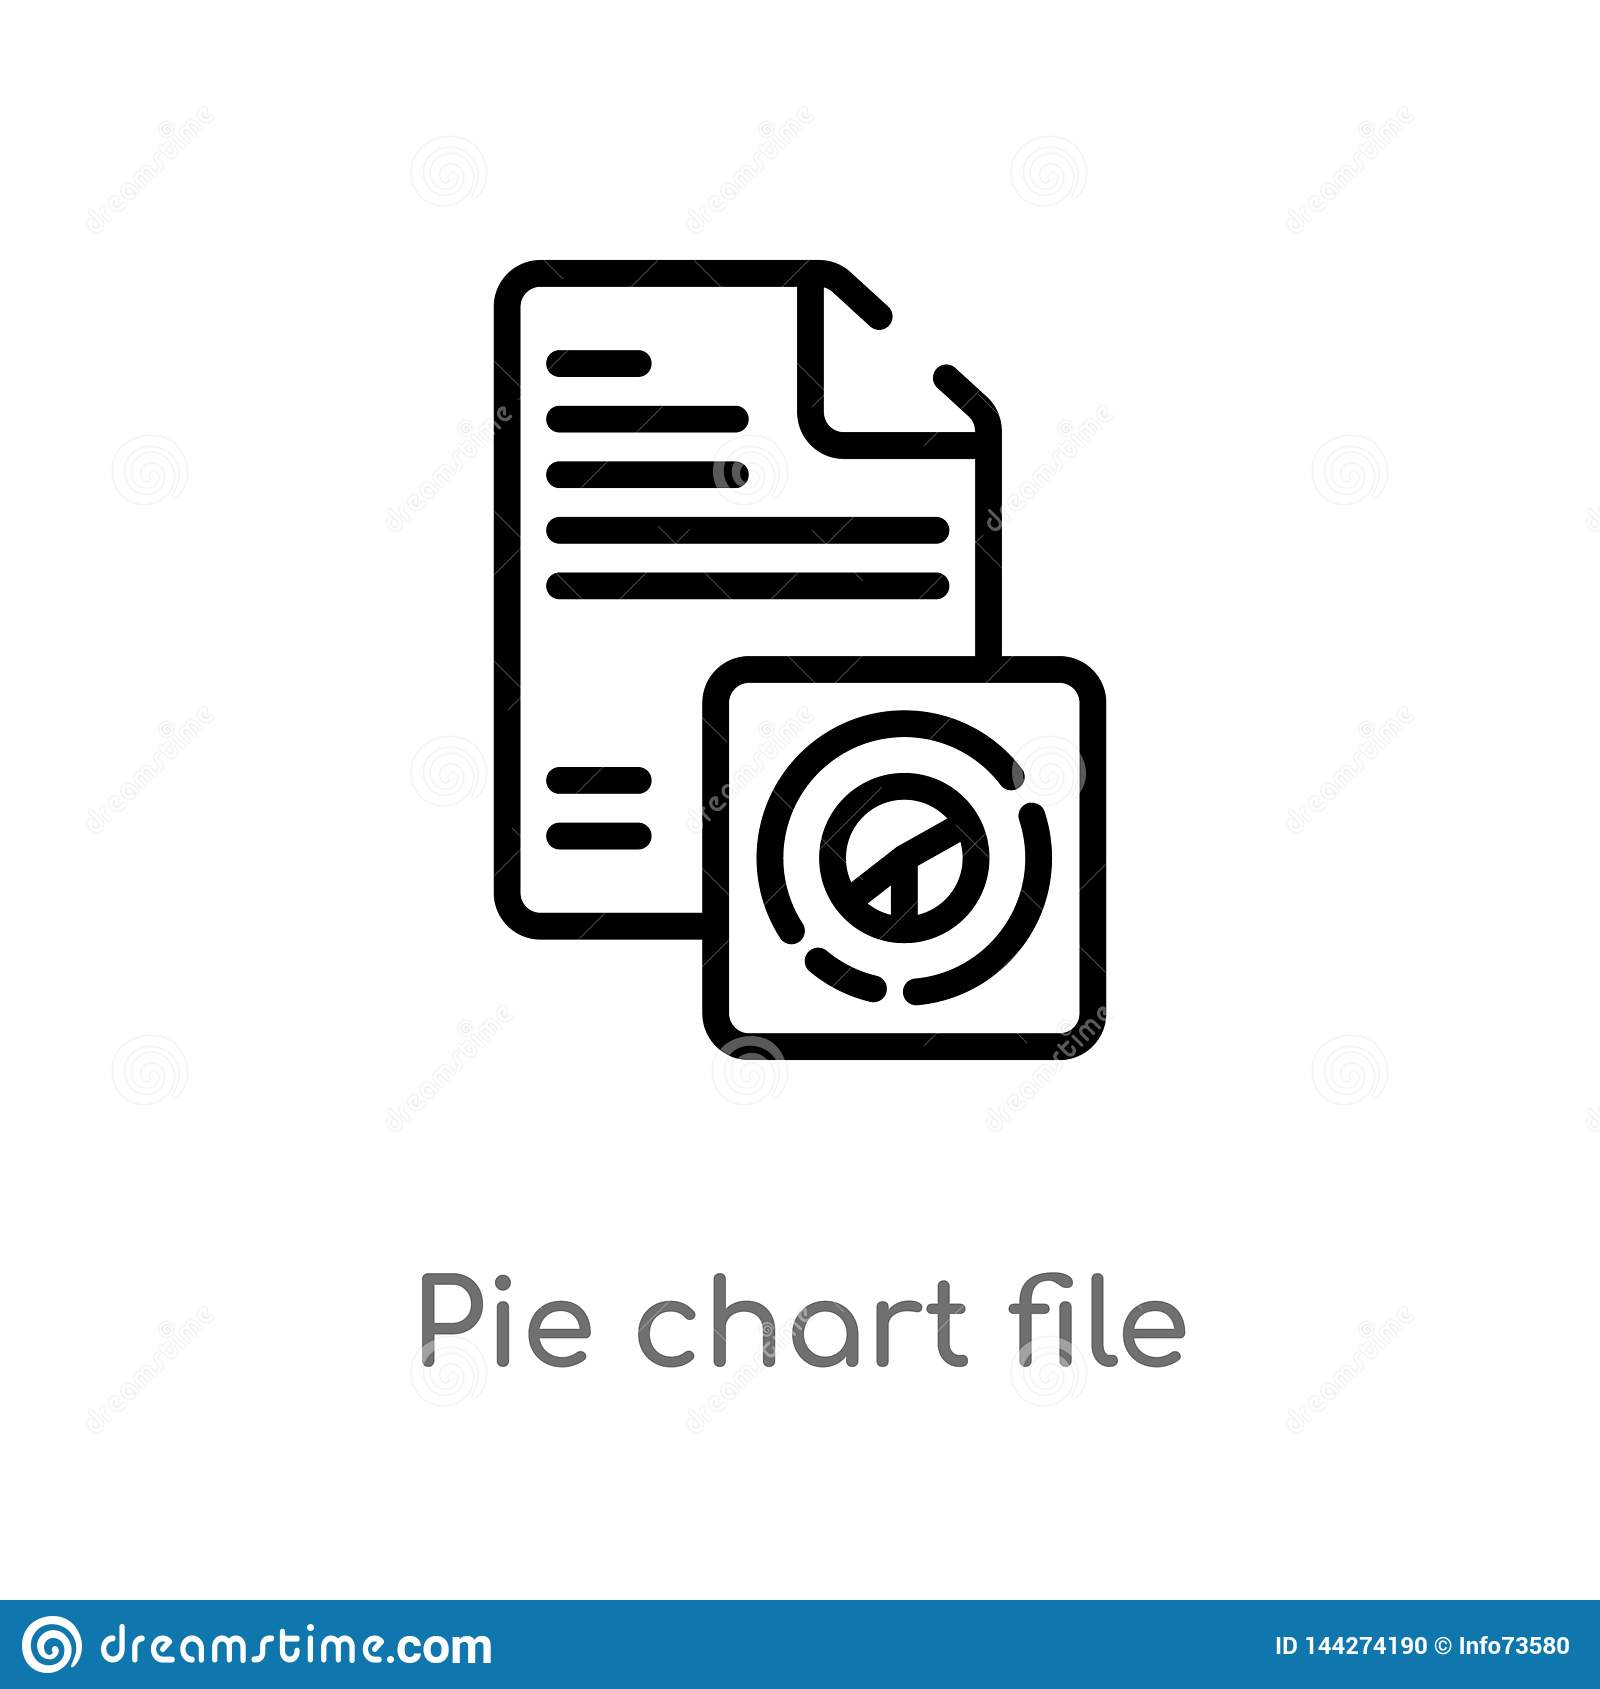 outline pie chart file vector icon. isolated black simple line element illustration from business concept. editable vector stroke